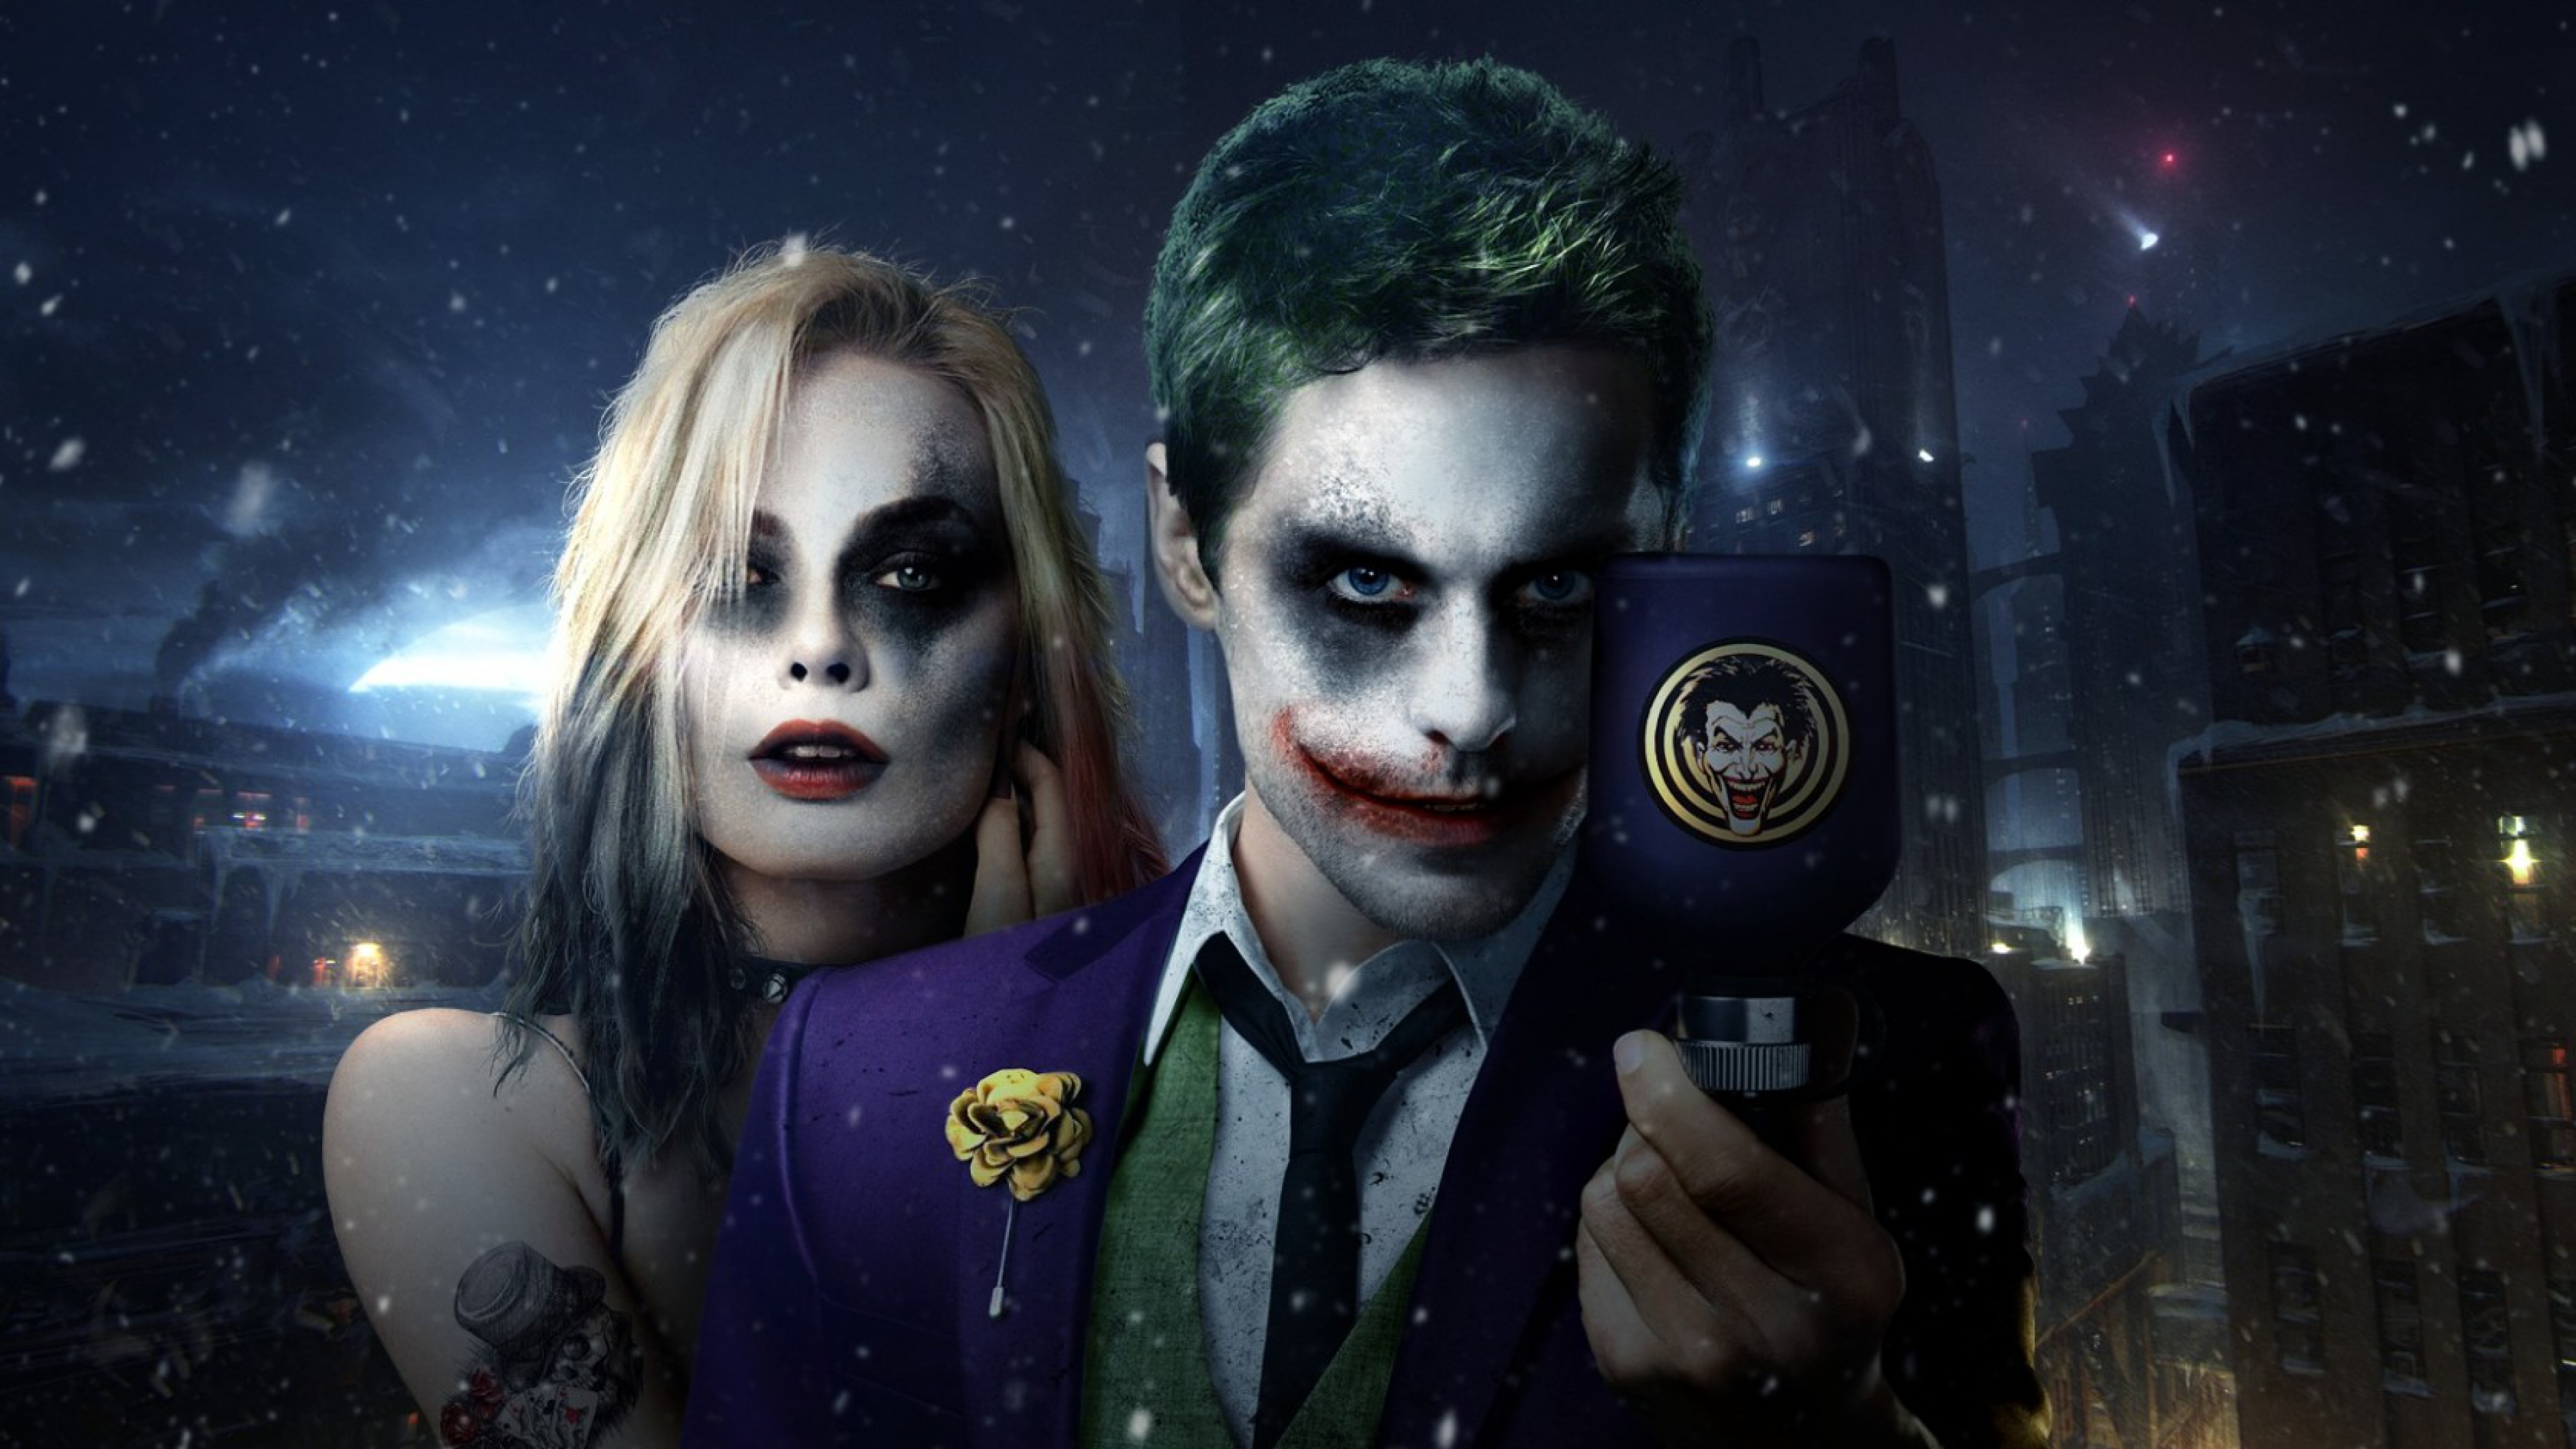 Joker Harley Quinn Wallpaper Sf Wallpaper